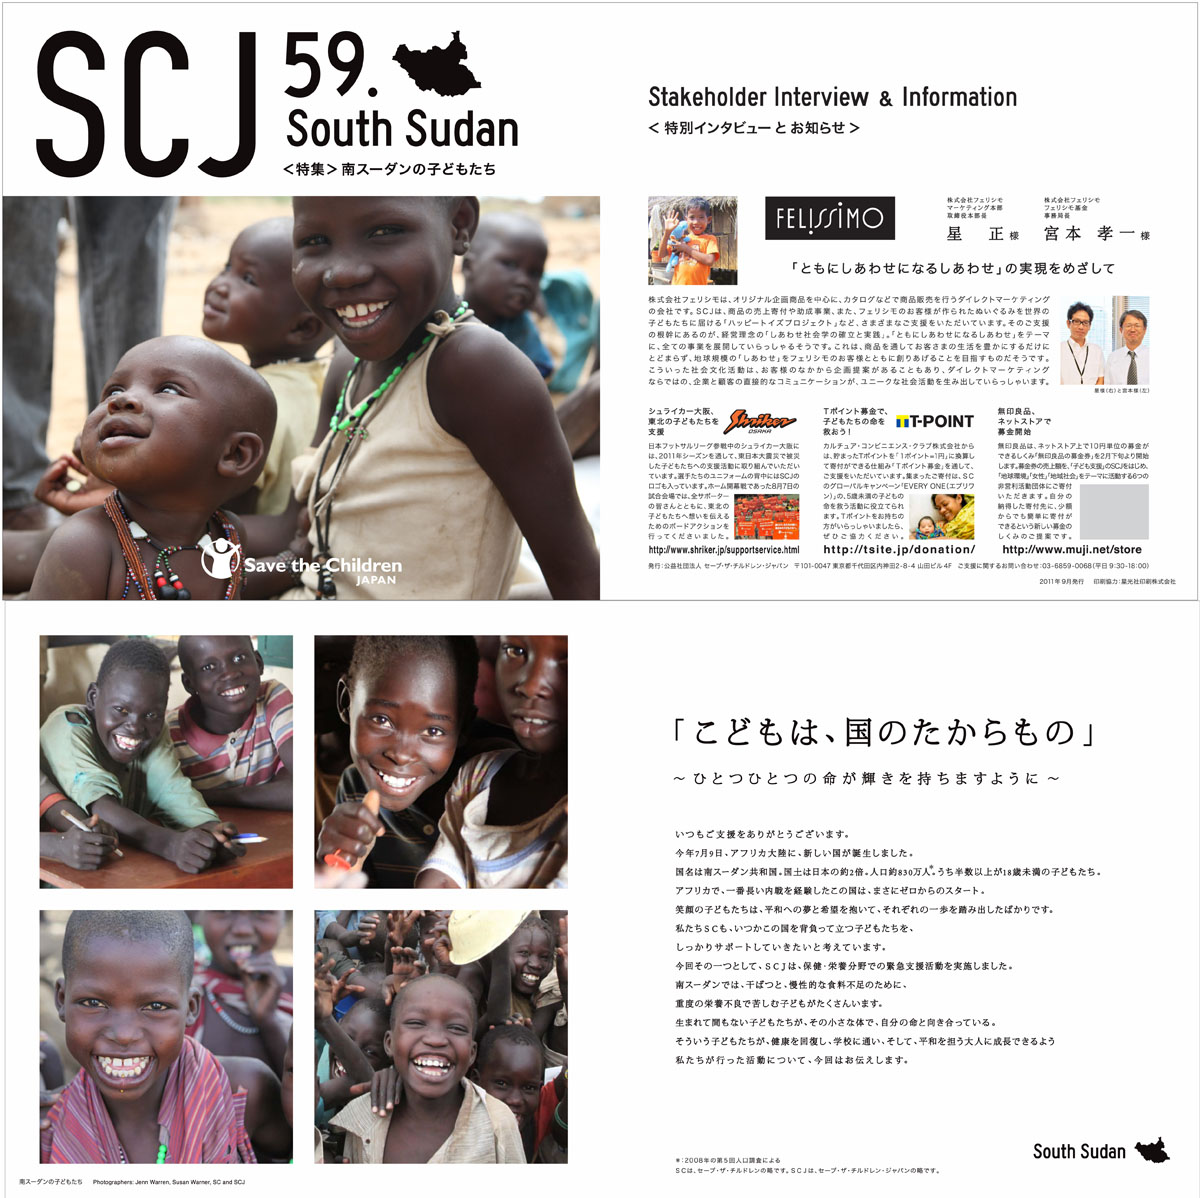 Save the Children Japan fundraising materials